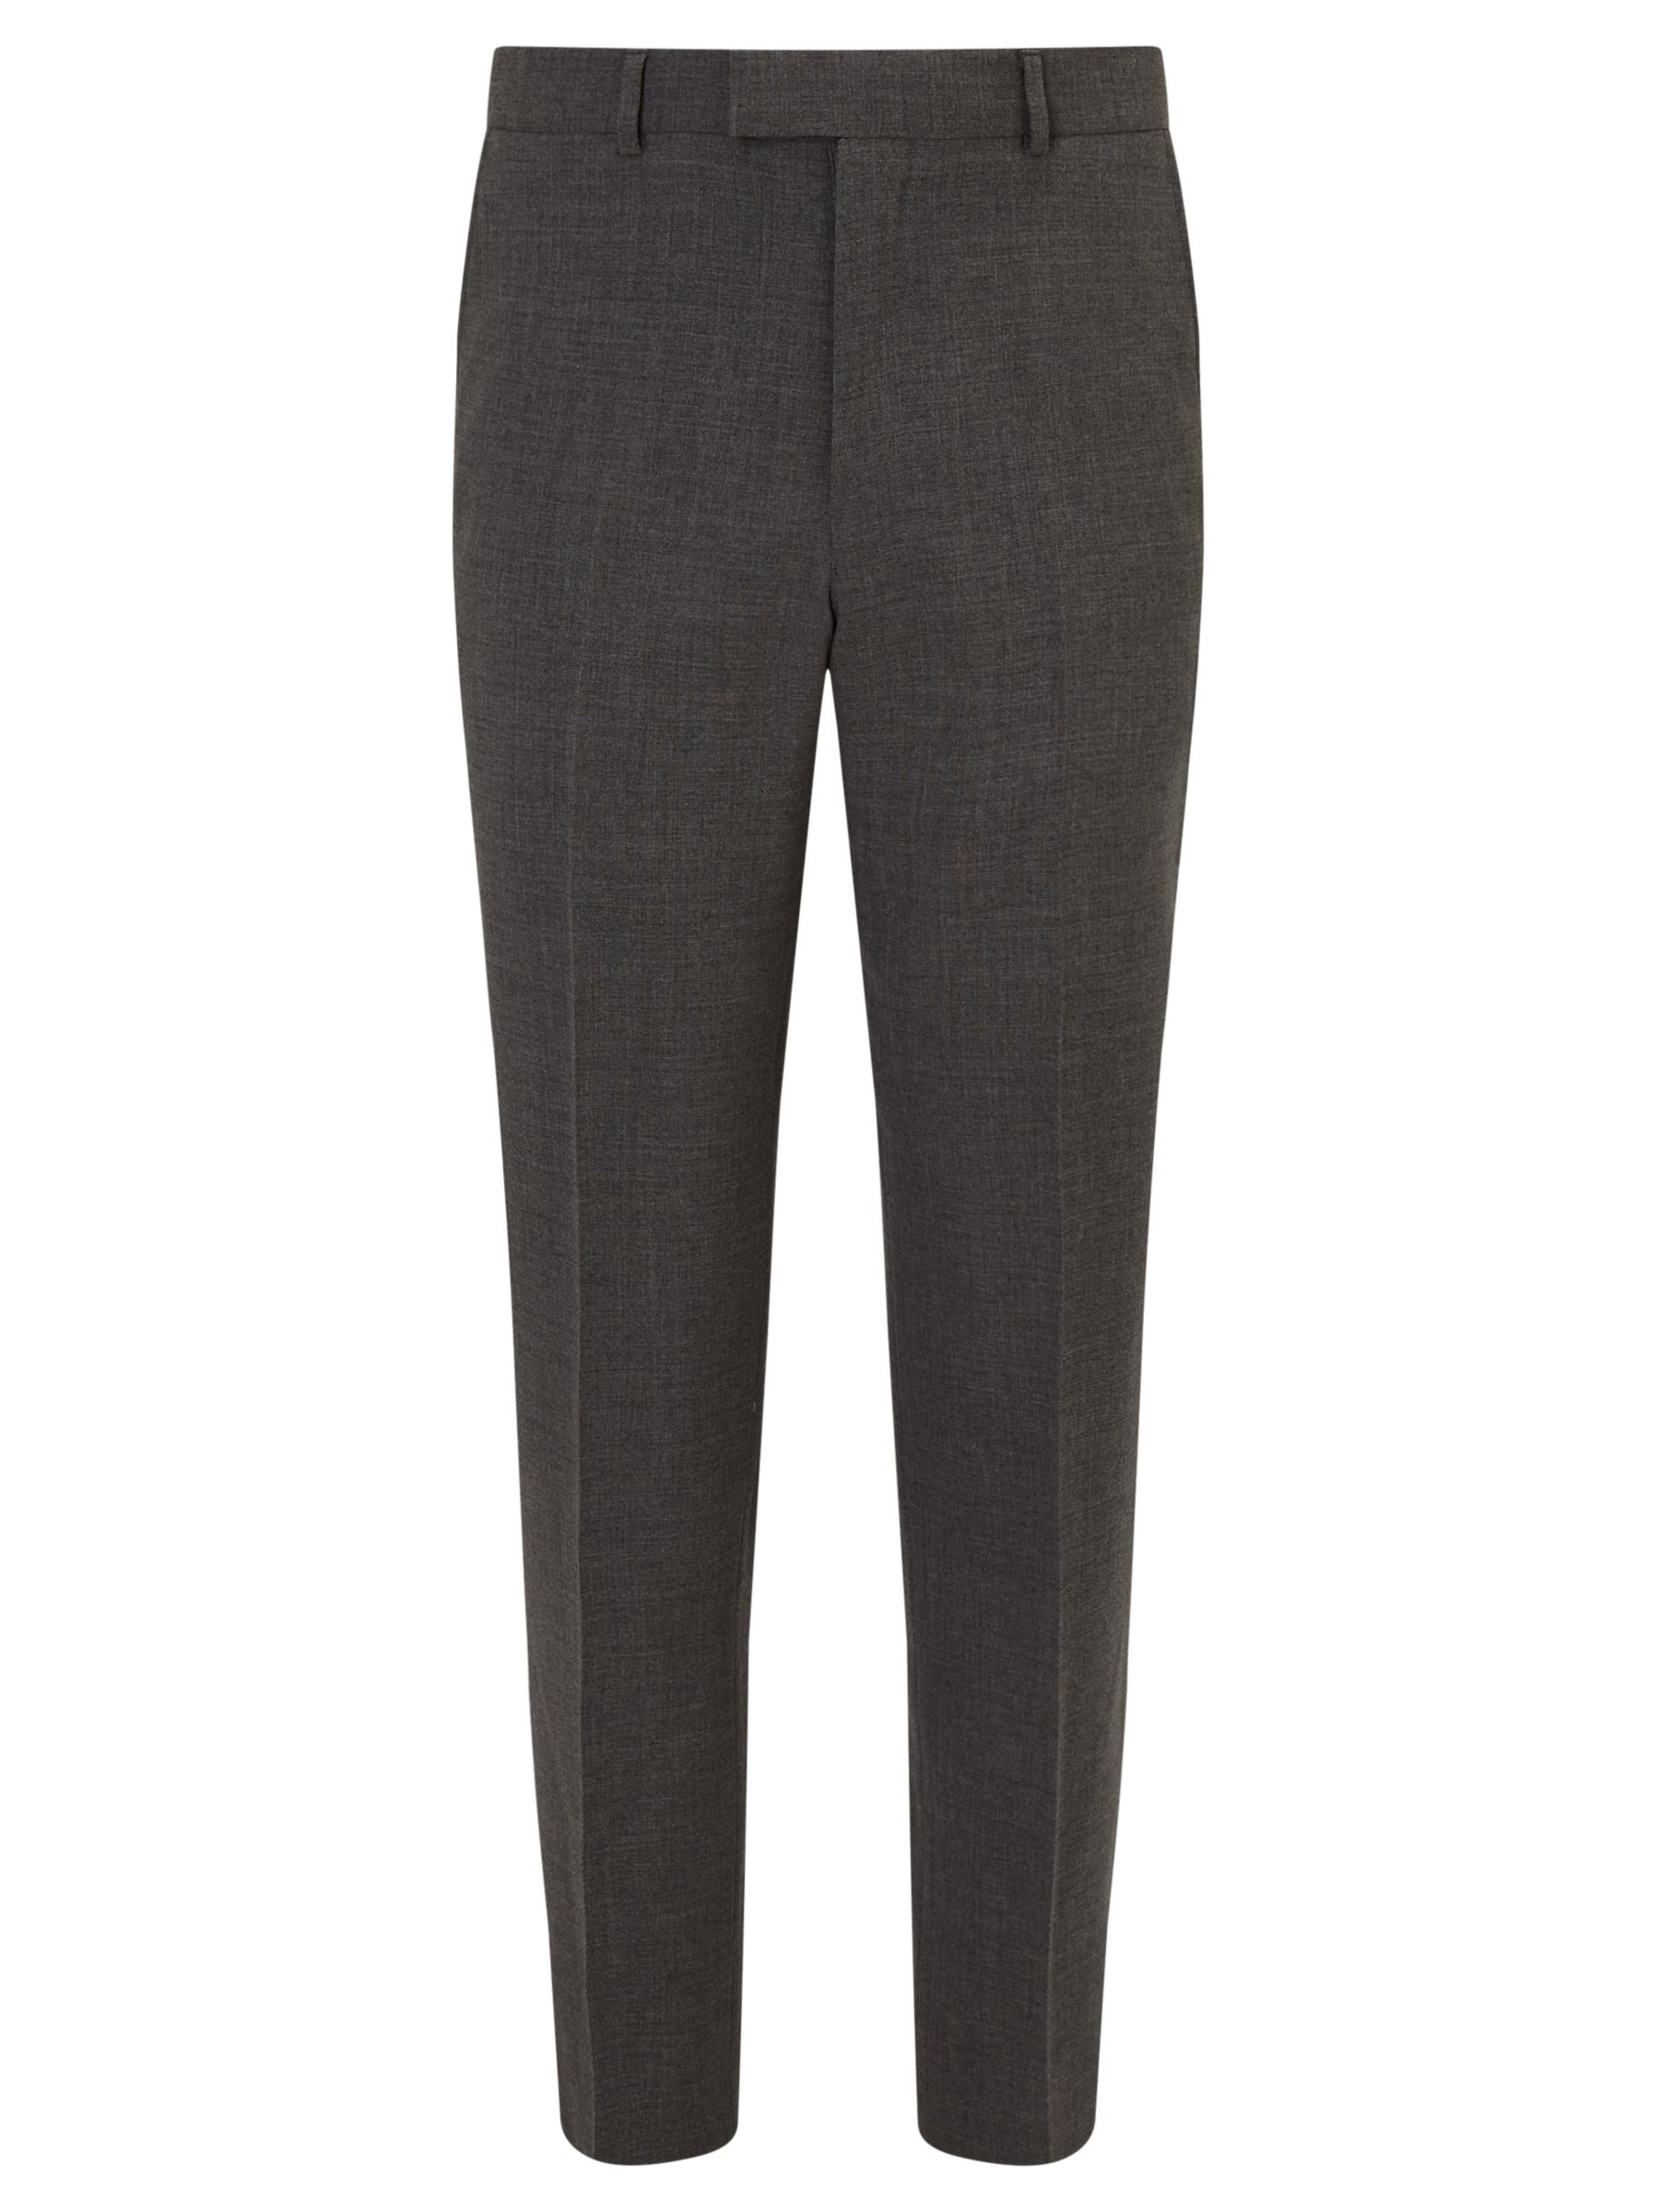 Chester by Chester Barrie Chester by Chester Barrie Three Ply Worsted Wool Tailored Suit Trousers, Grey